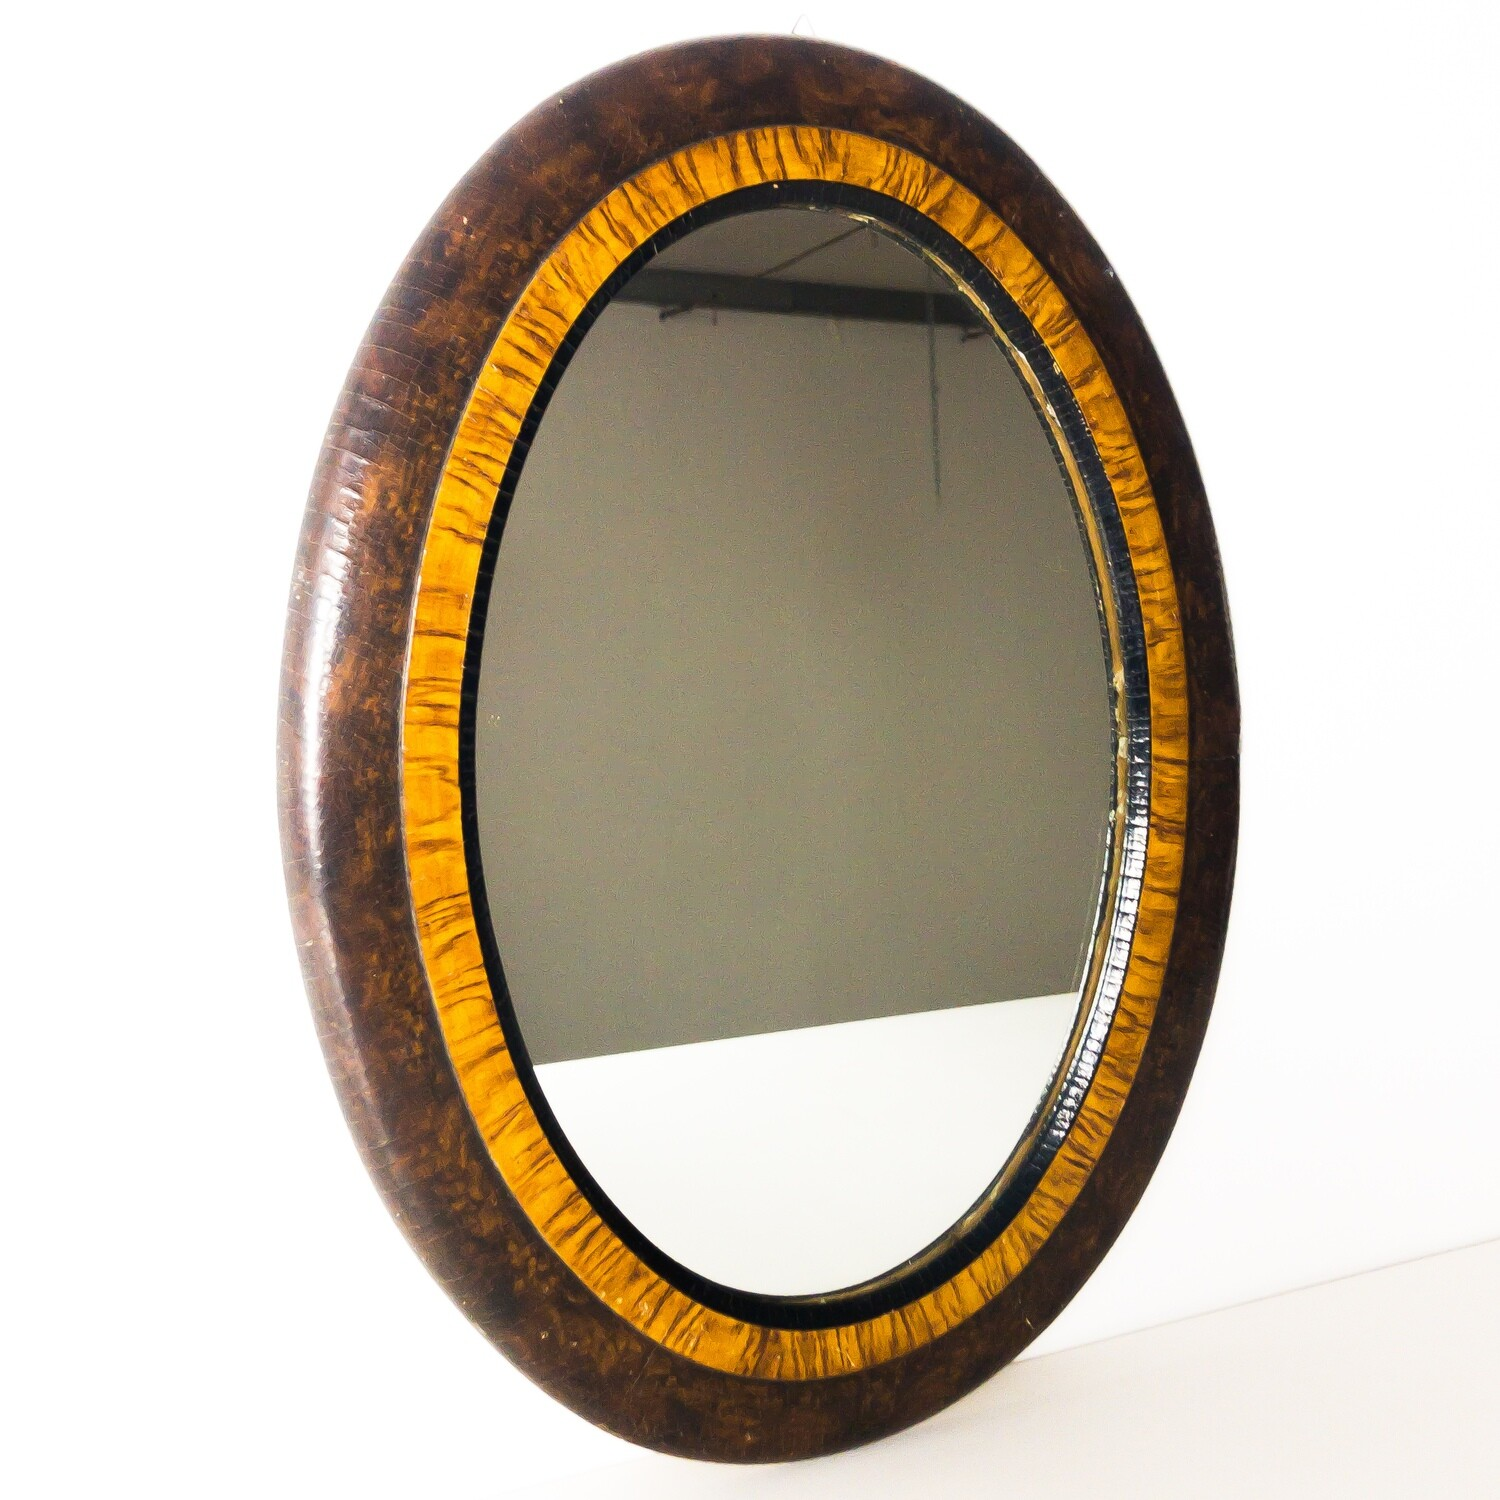 Art Deco style oval mirror with briar frame